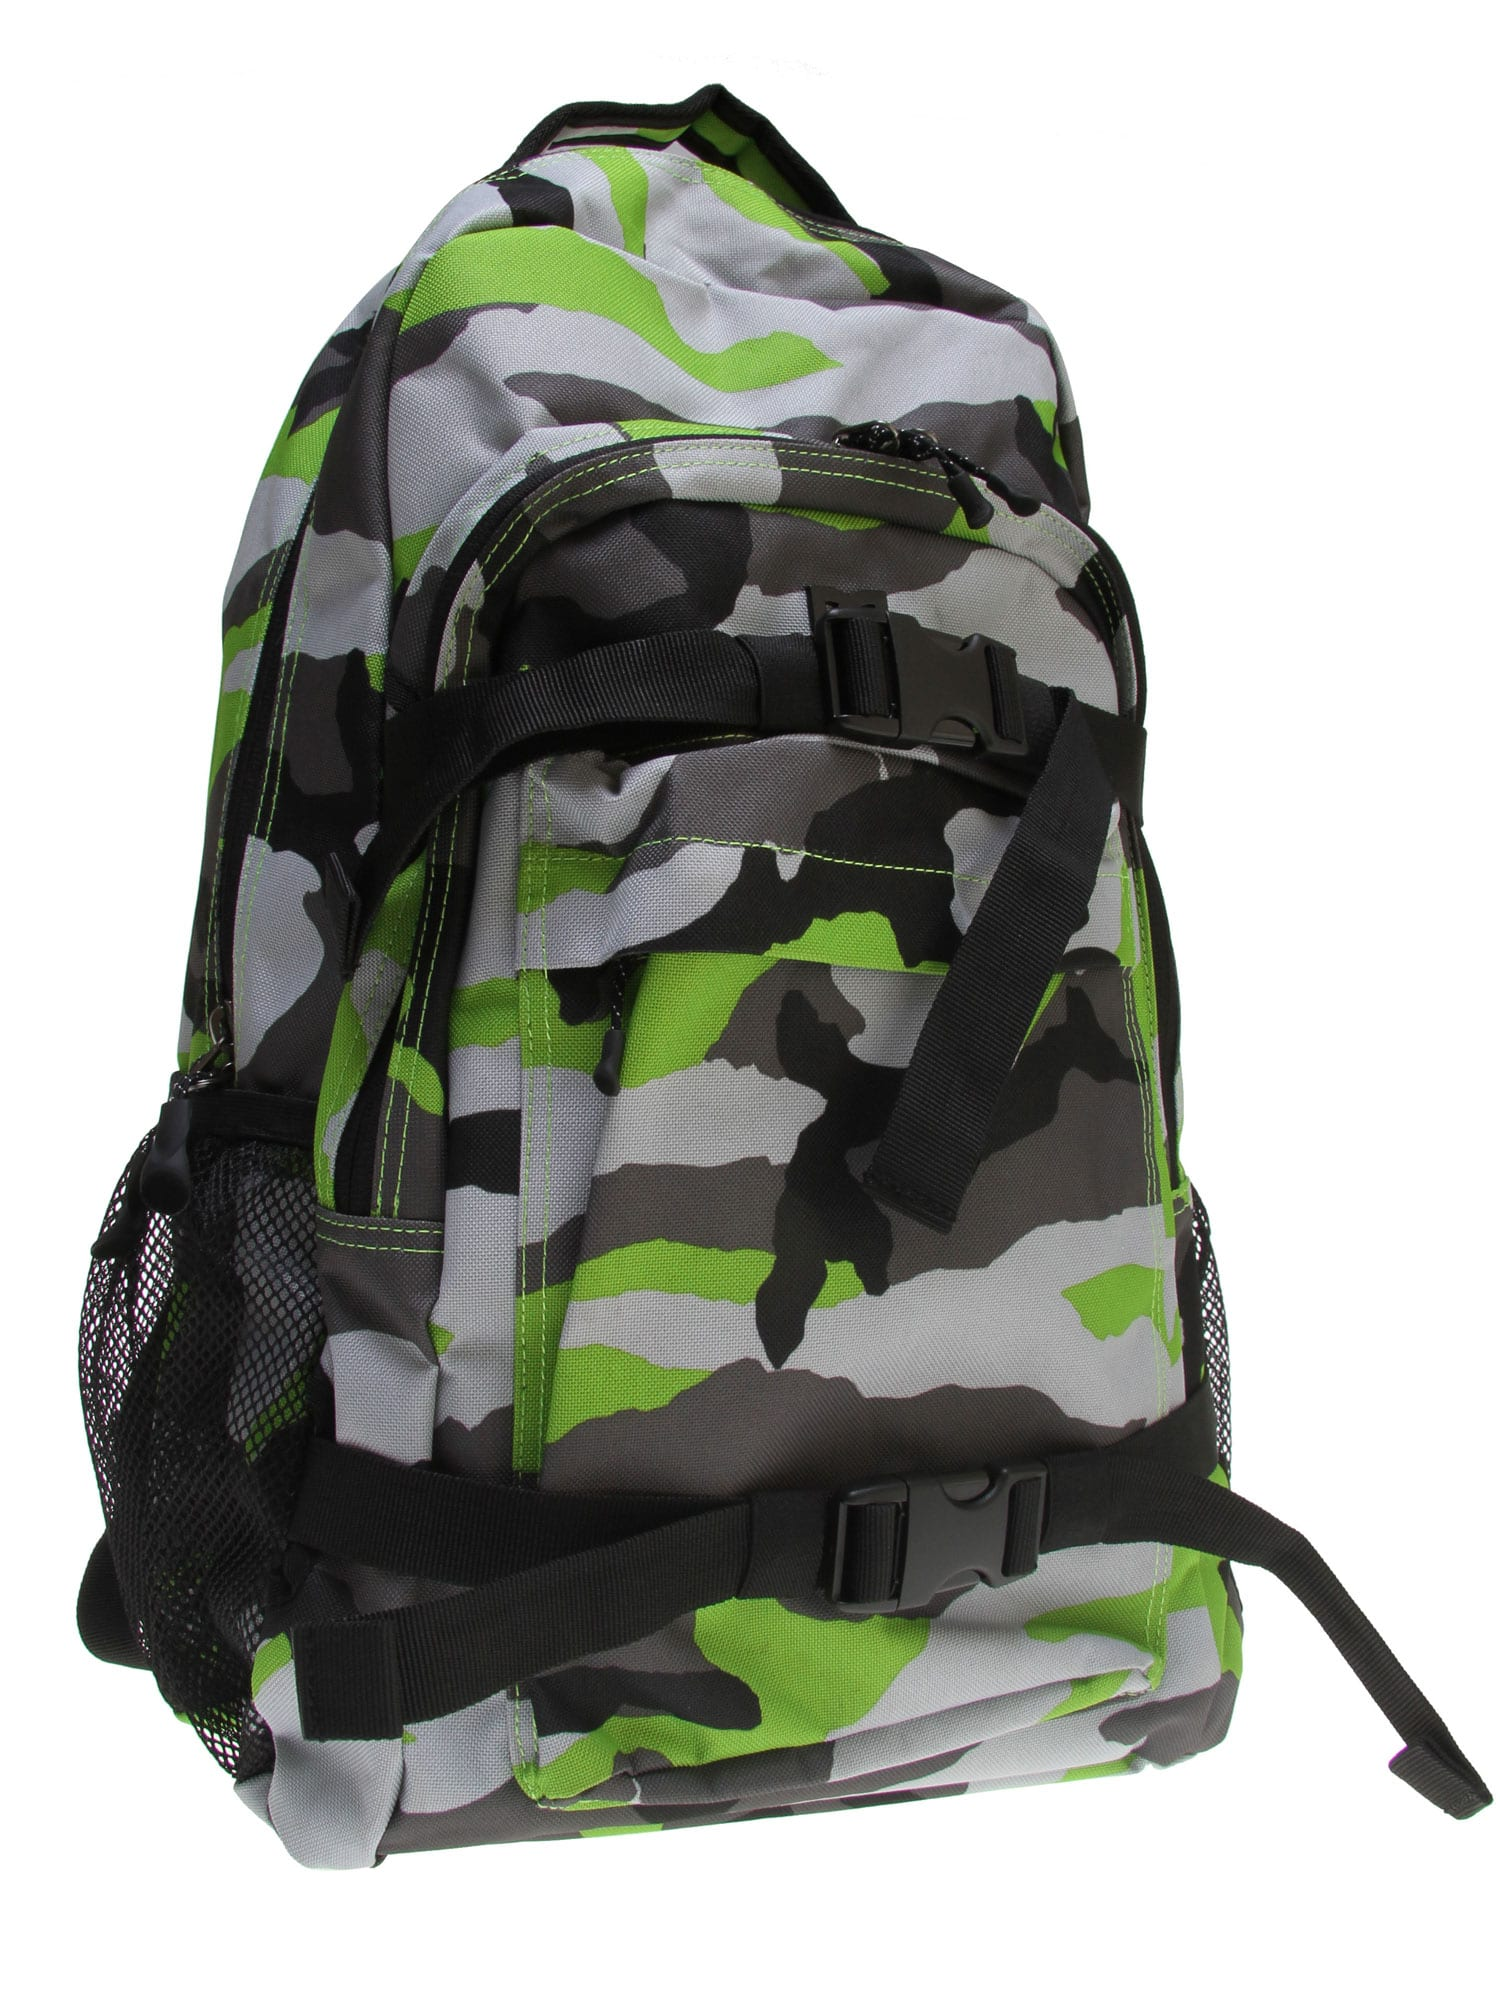 Shop for DC Enroll Backpack Lime Green/Camo - Men's